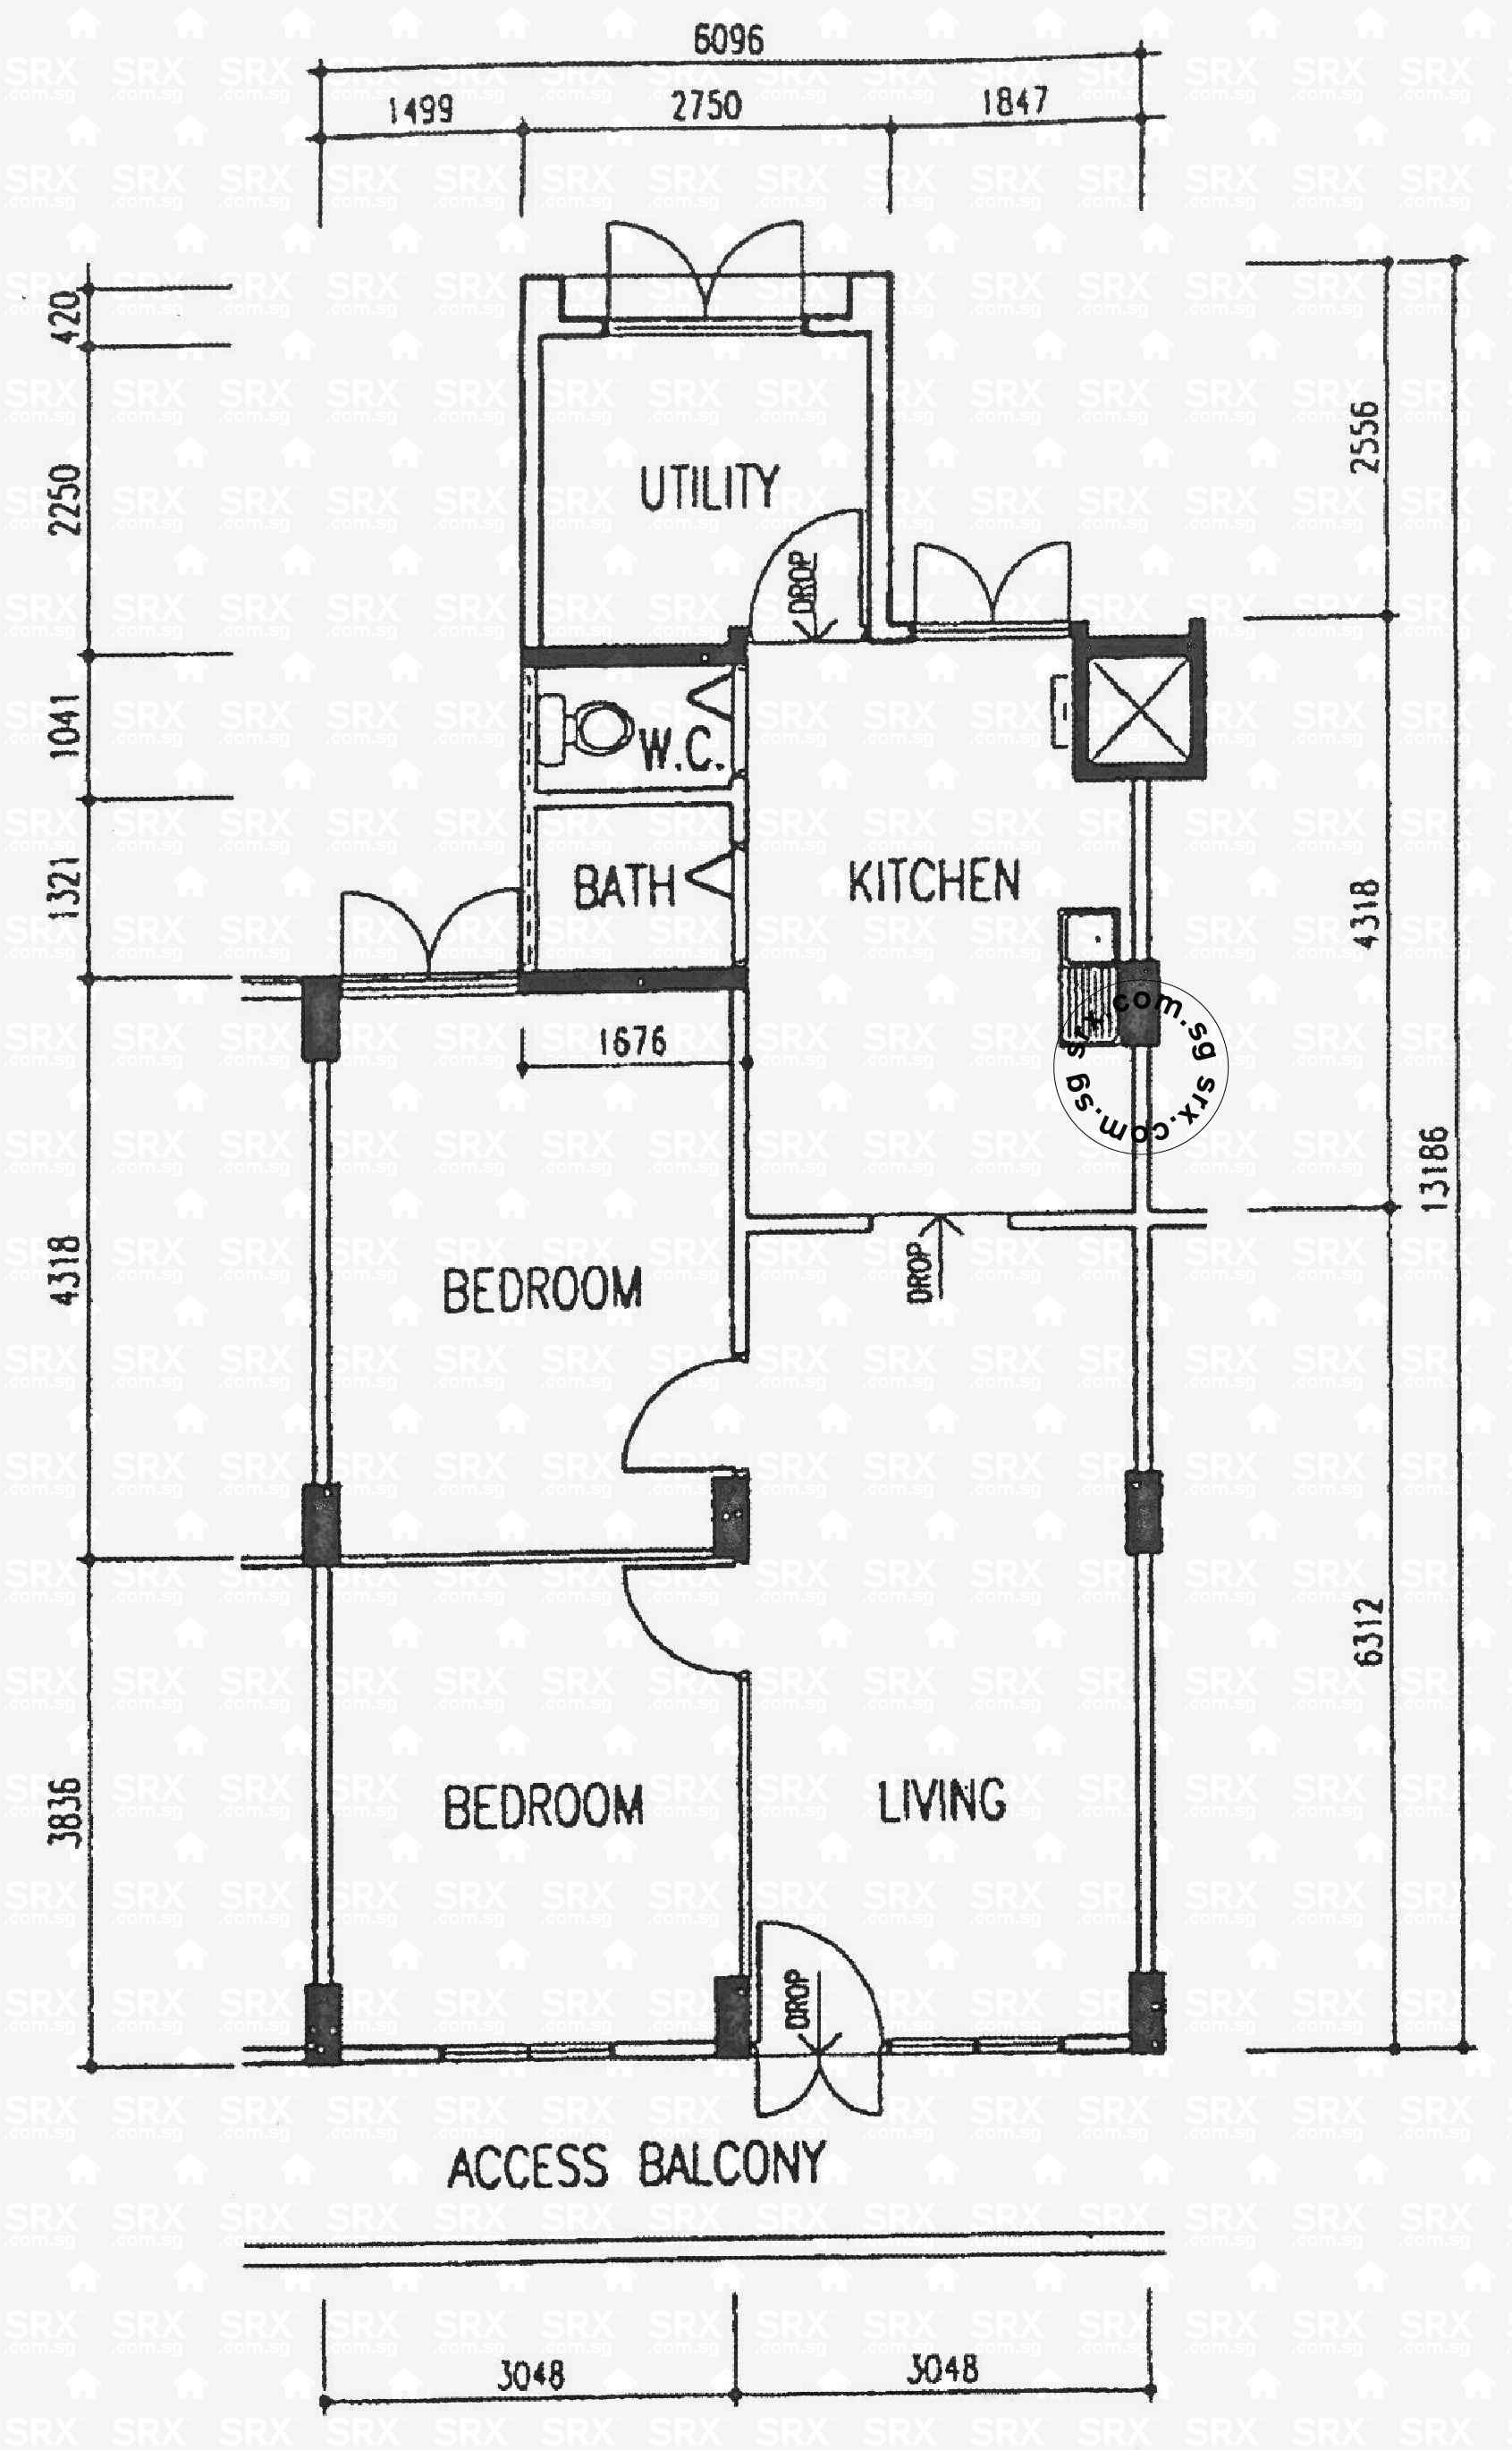 Eunos crescent hdb details srx property for 3 room flat floor plan